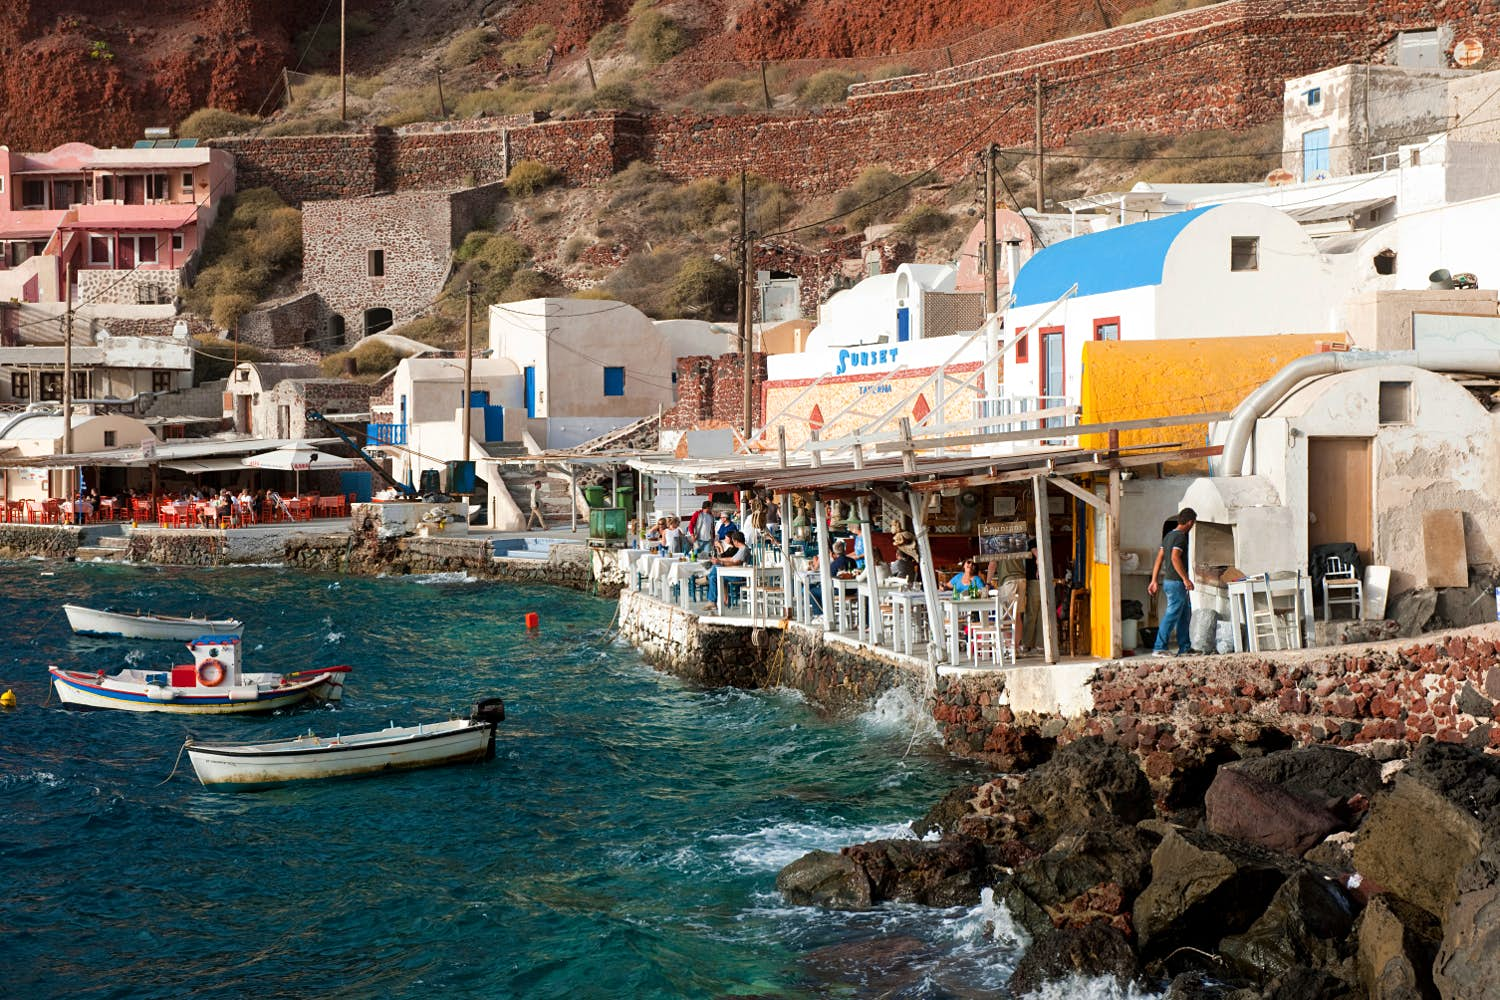 Restaurants with patios line the stone wall at the Ammoudi port.